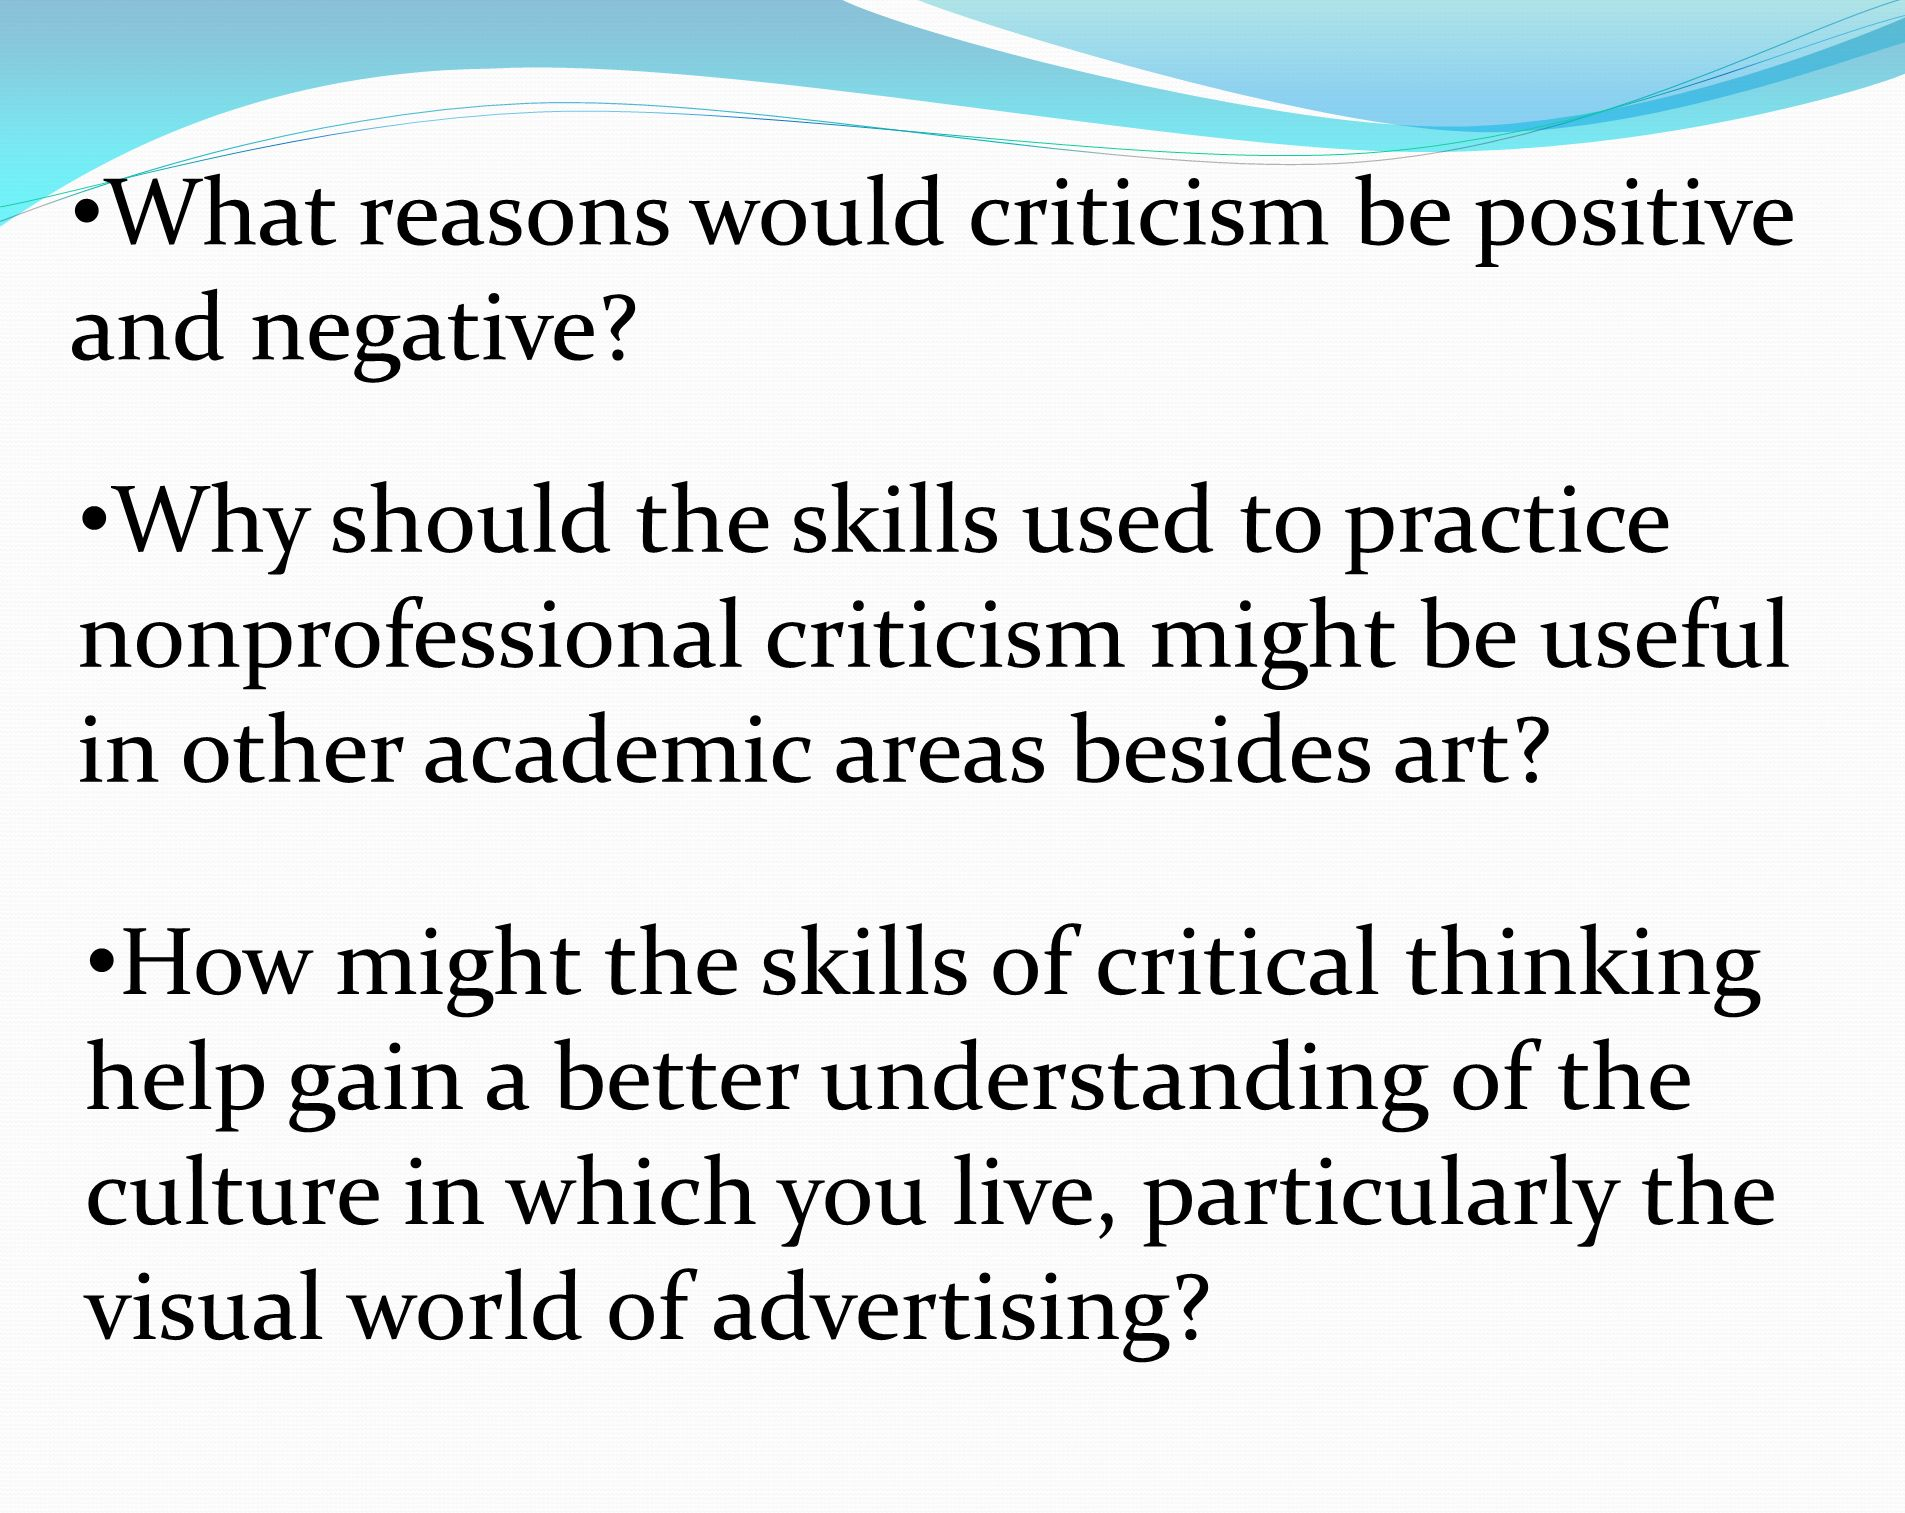 What reasons would criticism be positive and negative